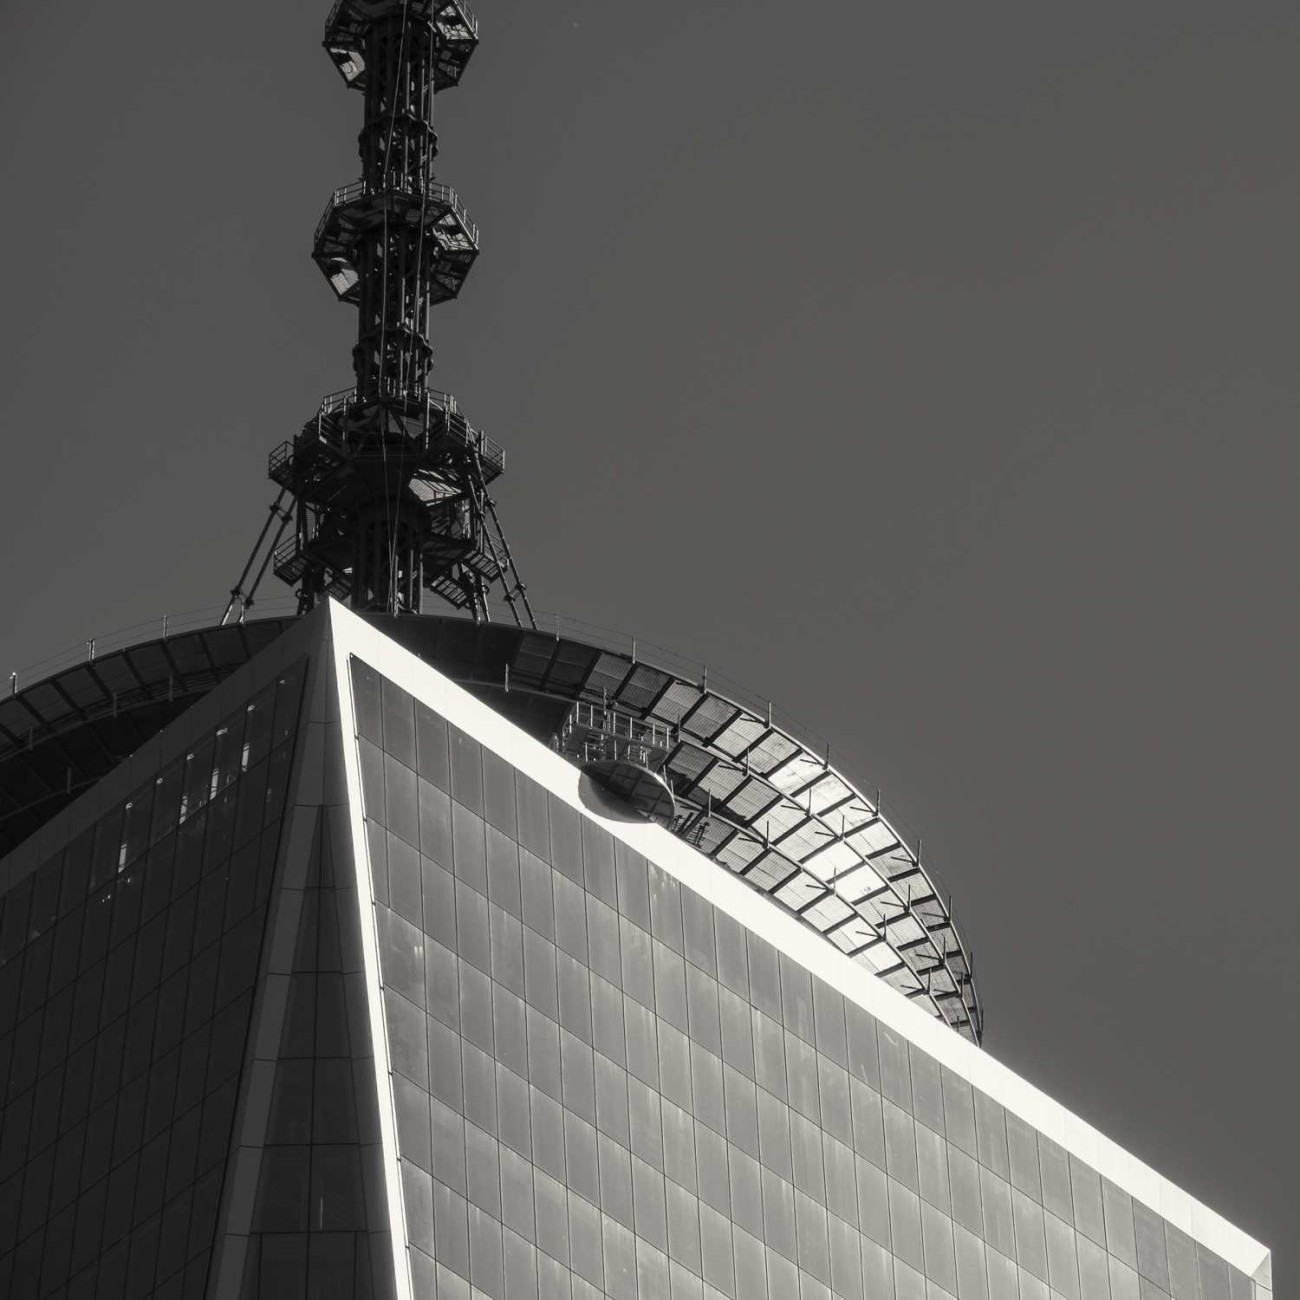 Top of the World Trade Center, NY, 2014